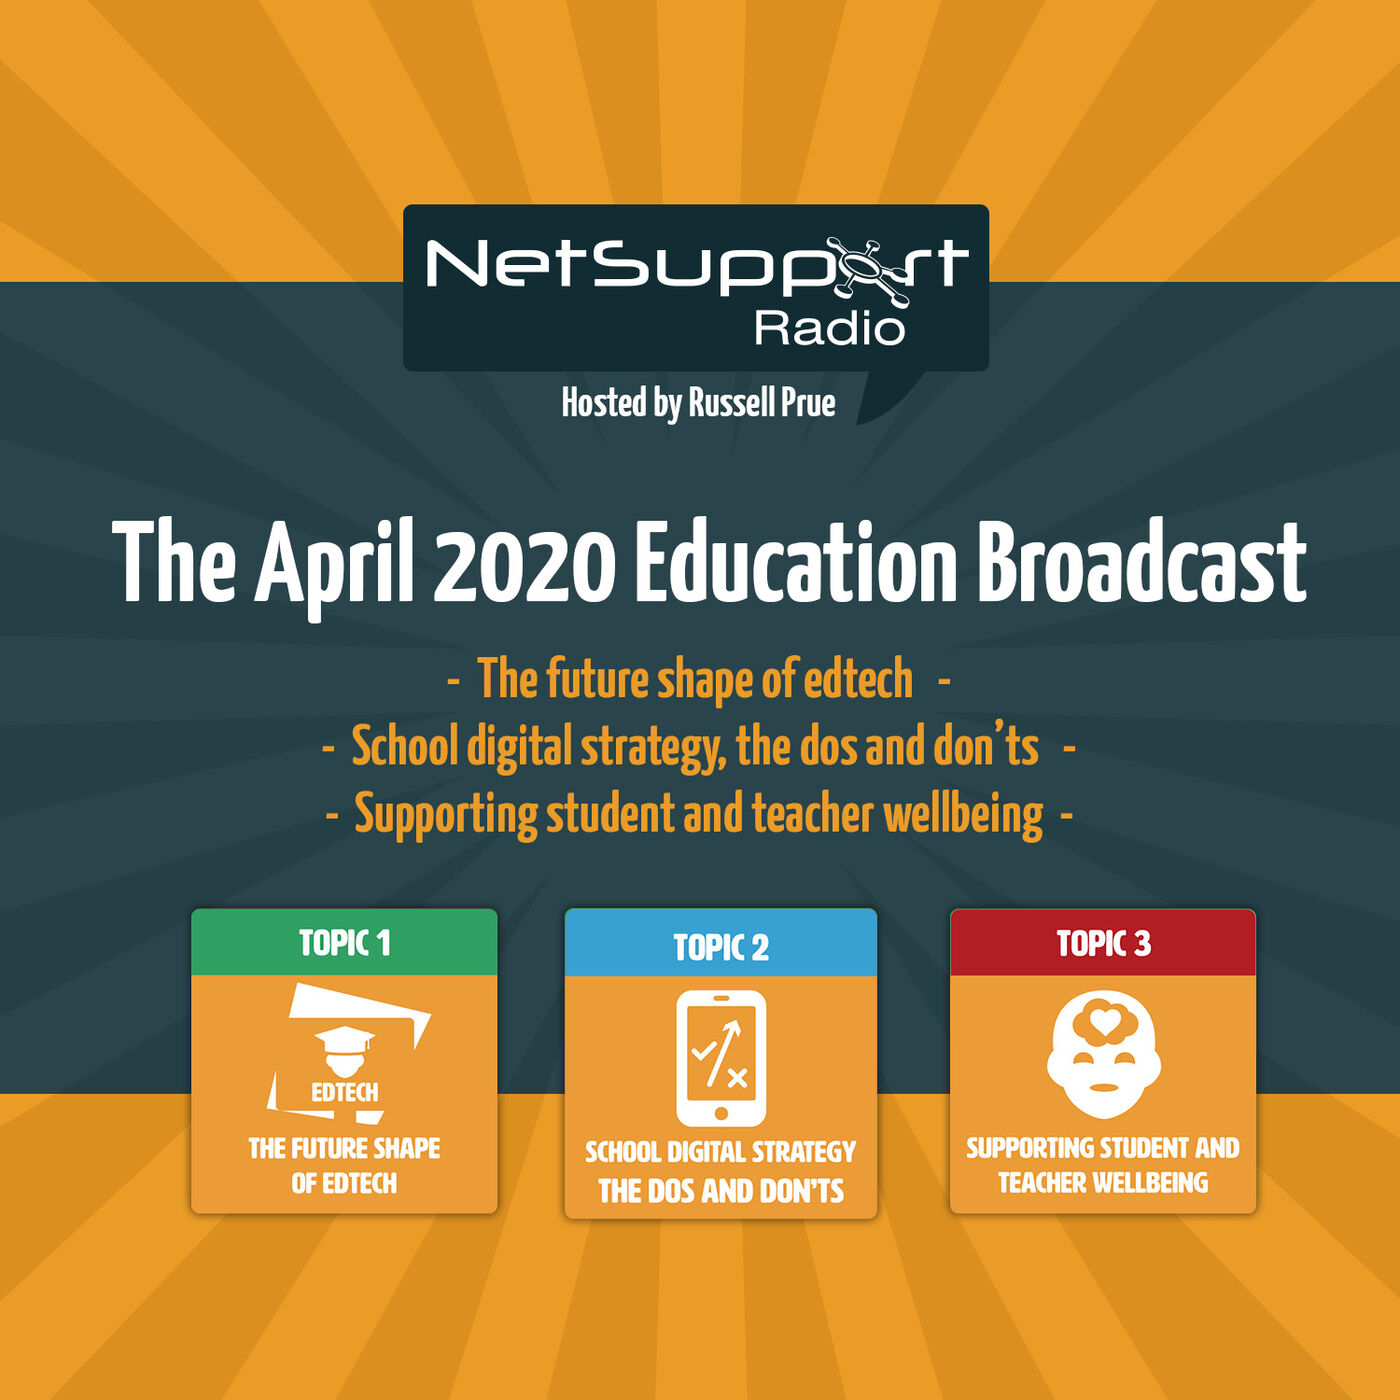 The April 2020 Education Broadcast